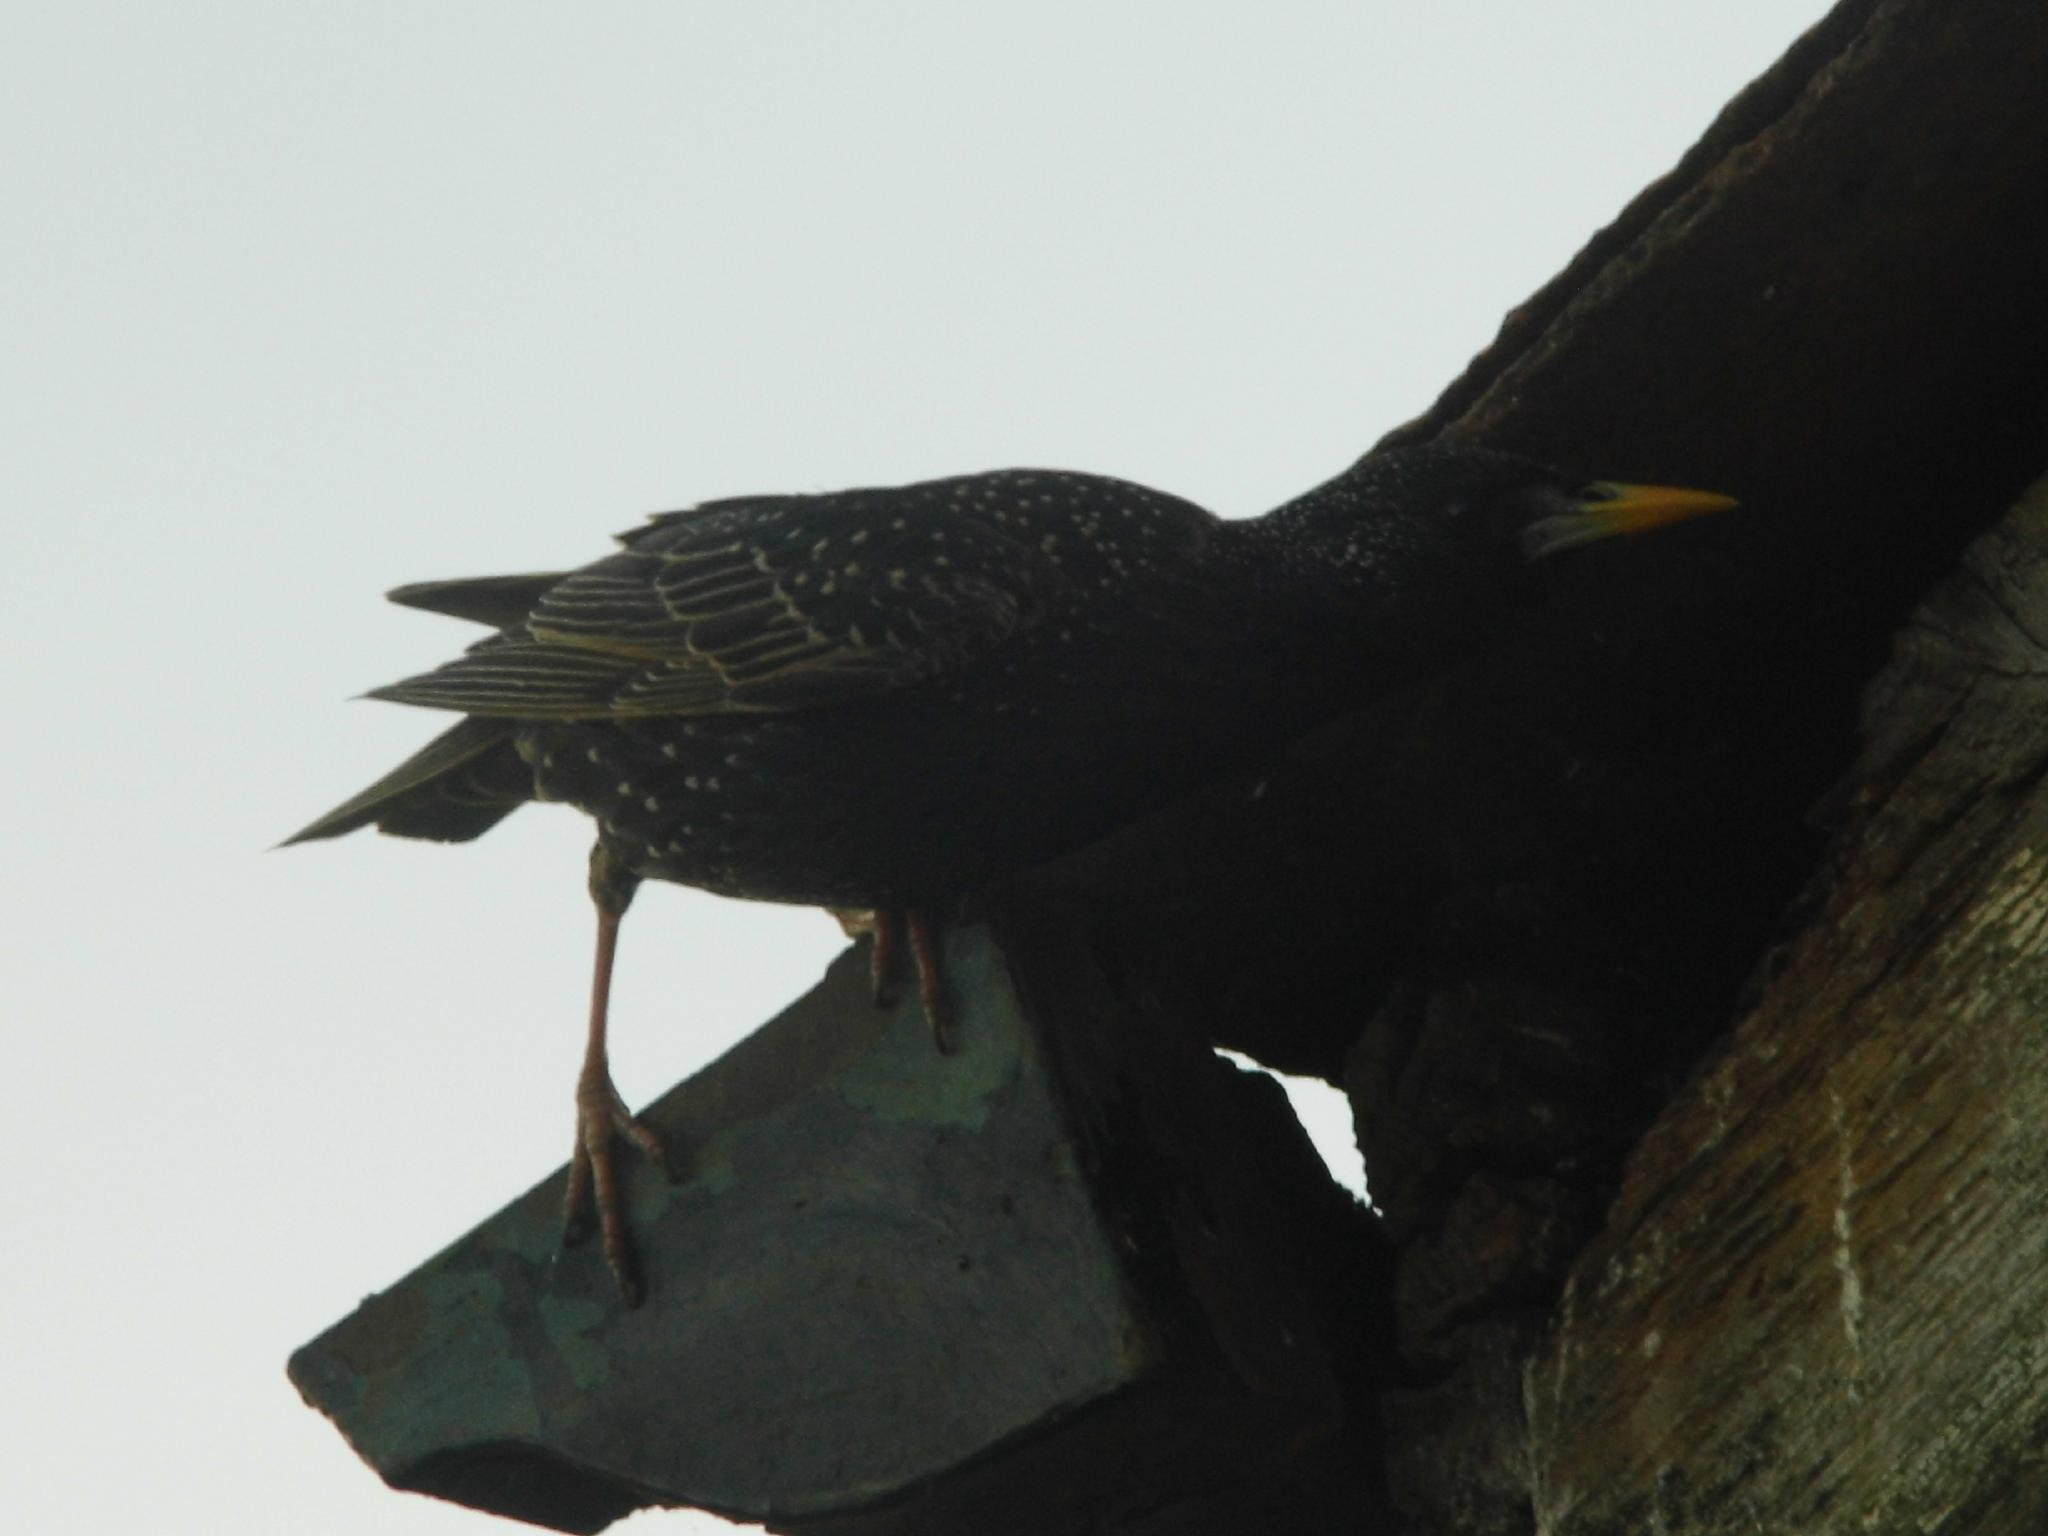 checking the young have fledged by Naomi D Tillotson-Keating